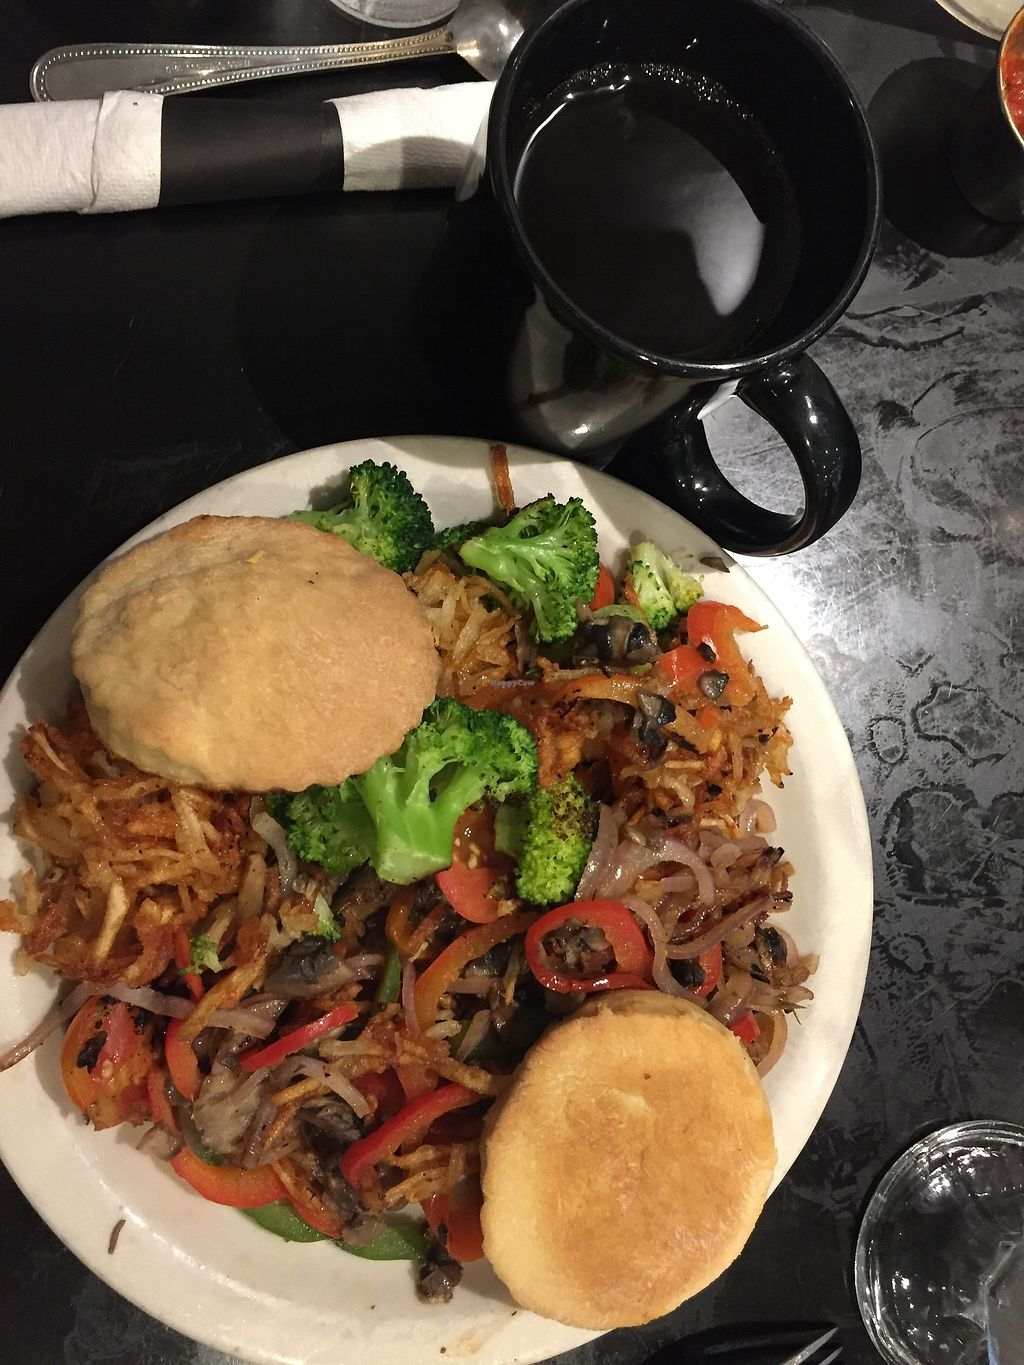 "Photo of Champs Diner  by <a href=""/members/profile/Yasminesan"">Yasminesan</a> <br/>Veggie hash <br/> October 29, 2017  - <a href='/contact/abuse/image/24286/319736'>Report</a>"